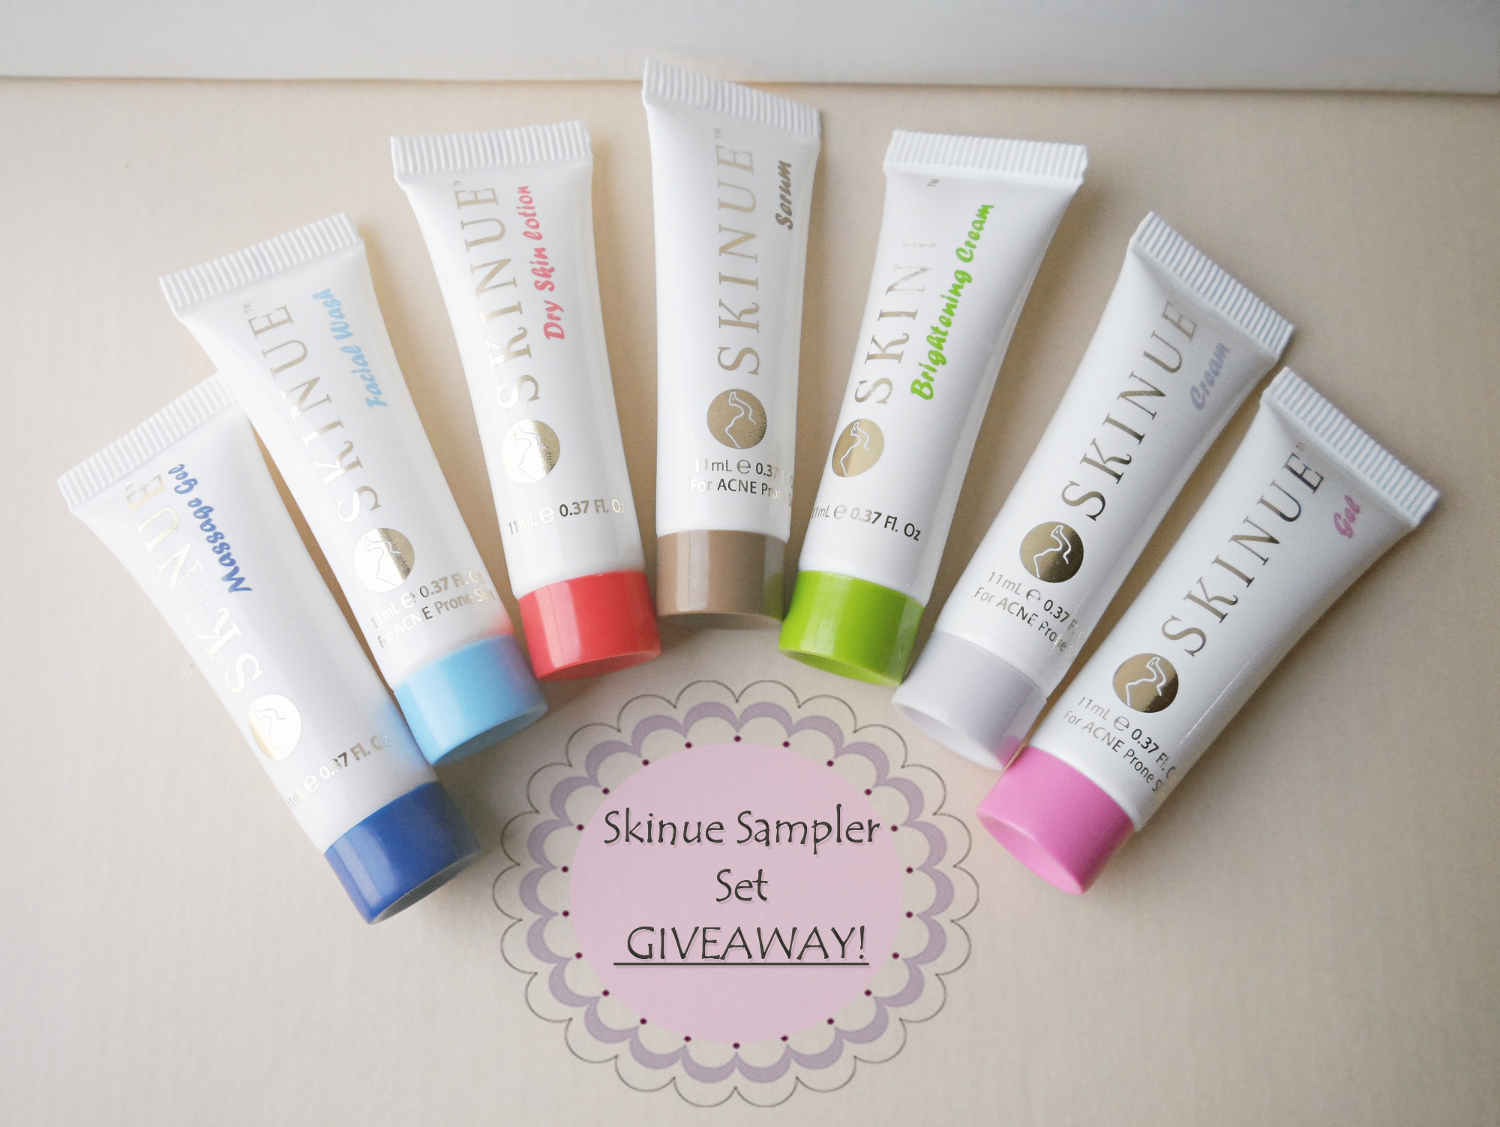 bblogger giveaway, acne prone skin products giveaway